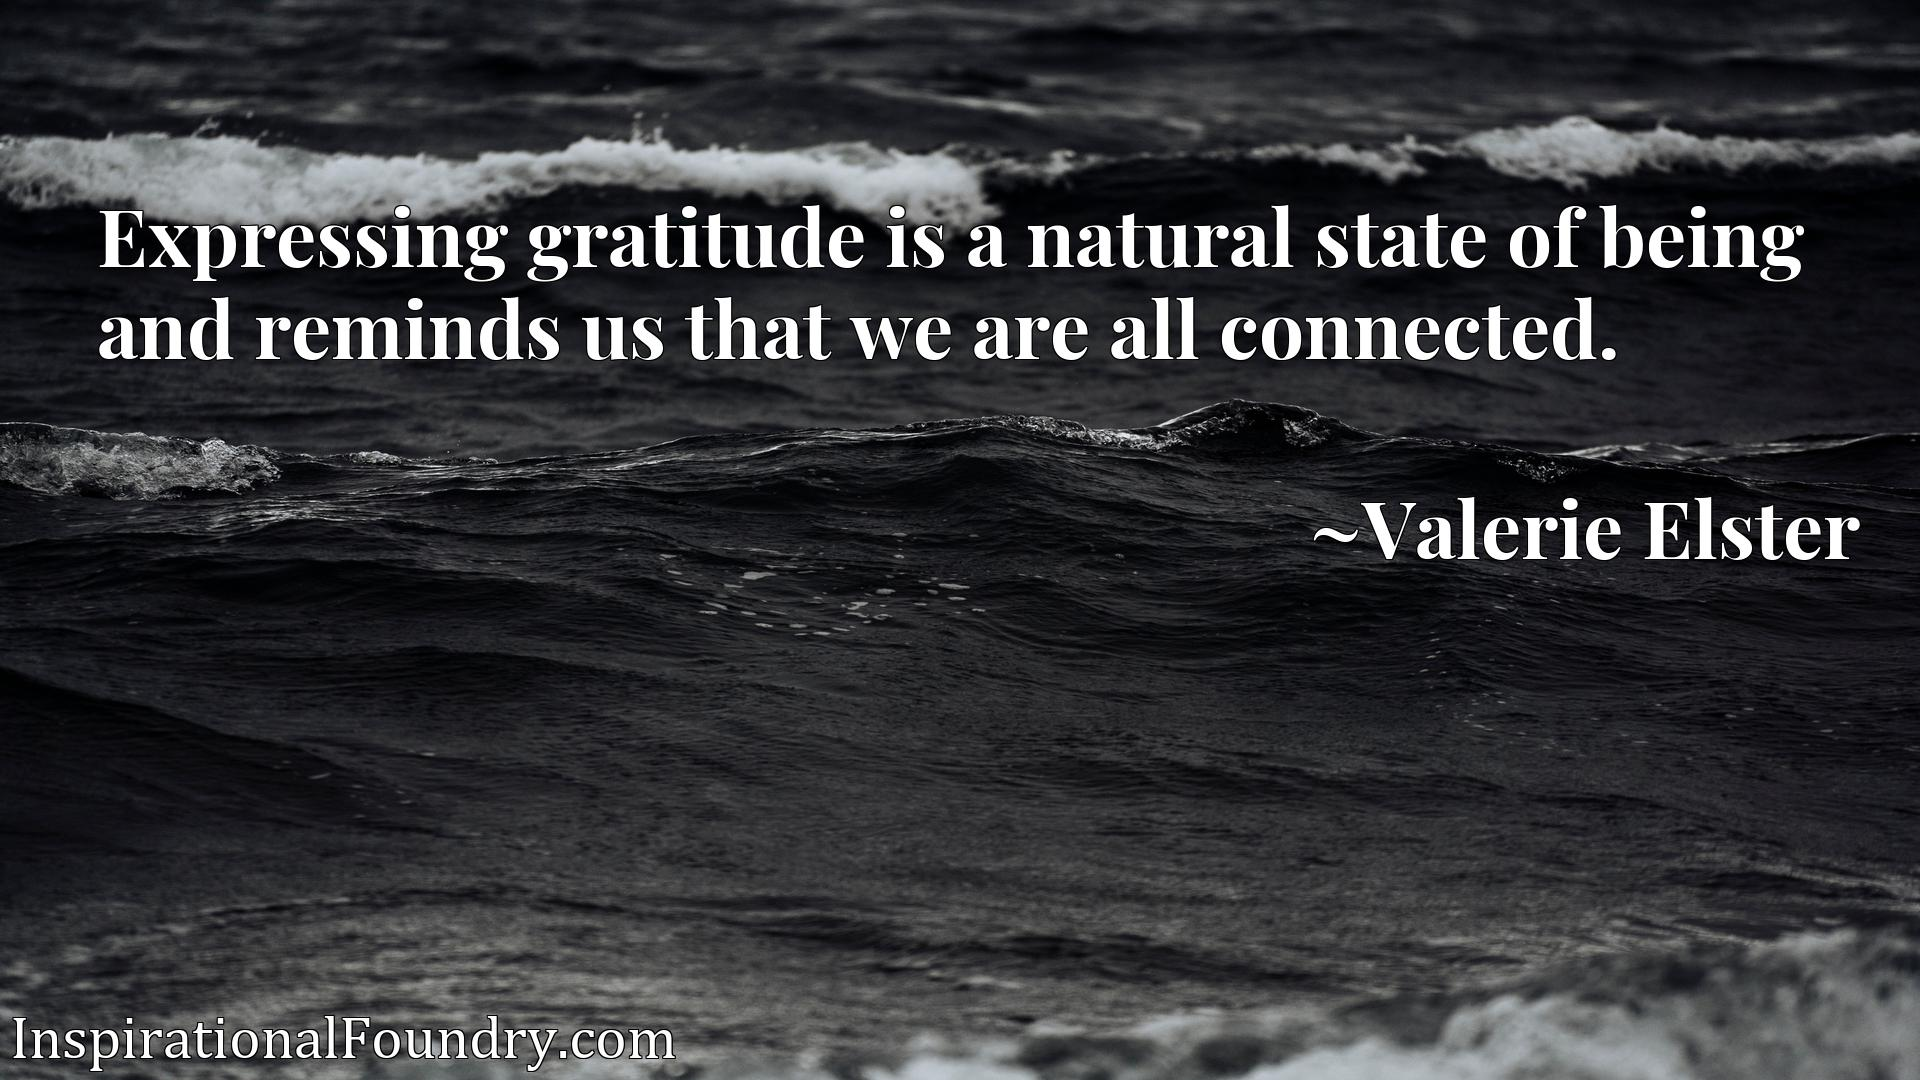 Expressing gratitude is a natural state of being and reminds us that we are all connected.